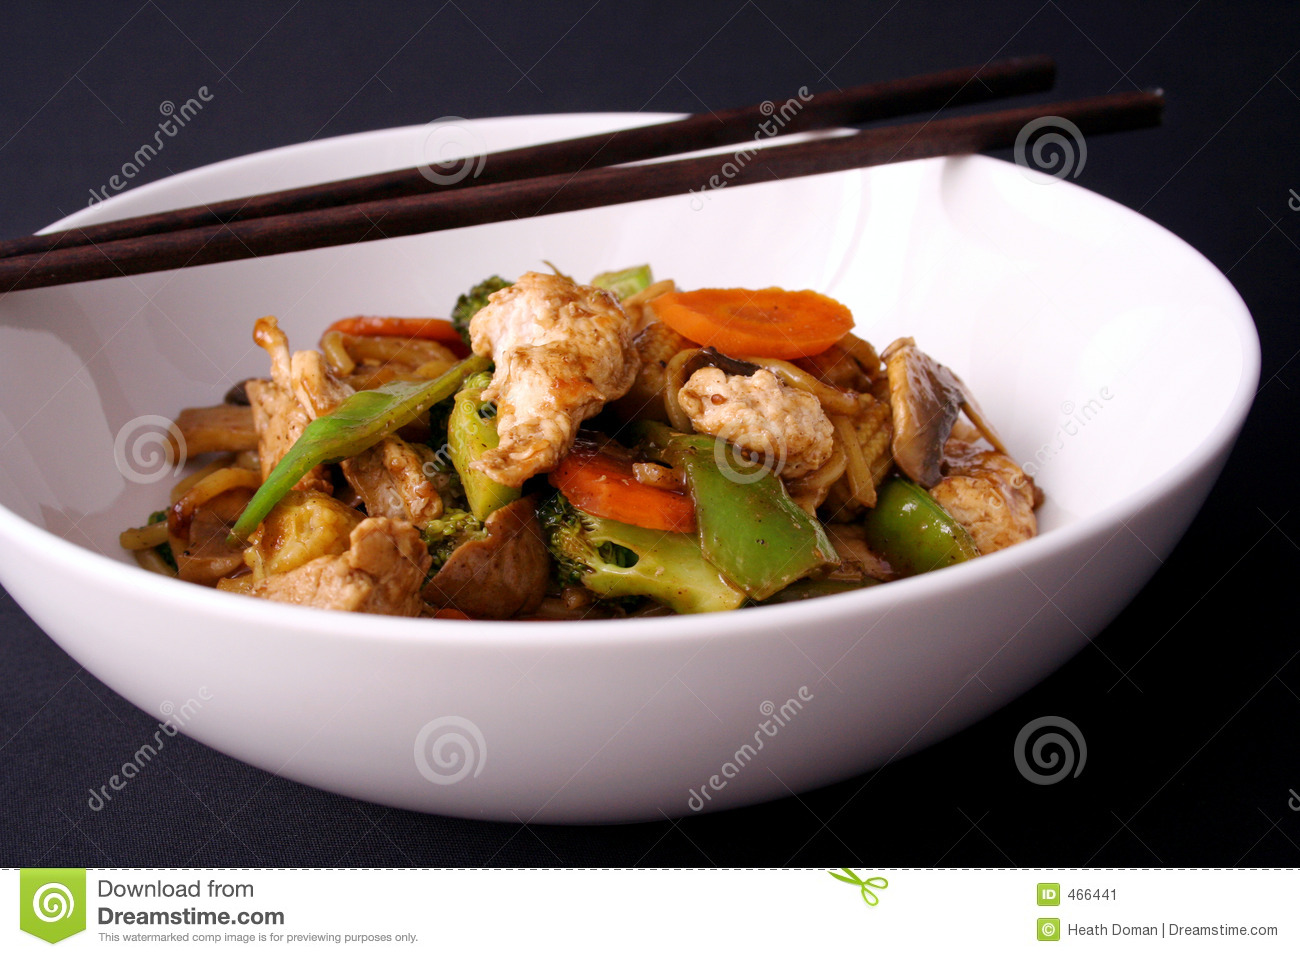 Download Stir fry and chop sticks stock image. Image of green, peas - 466441